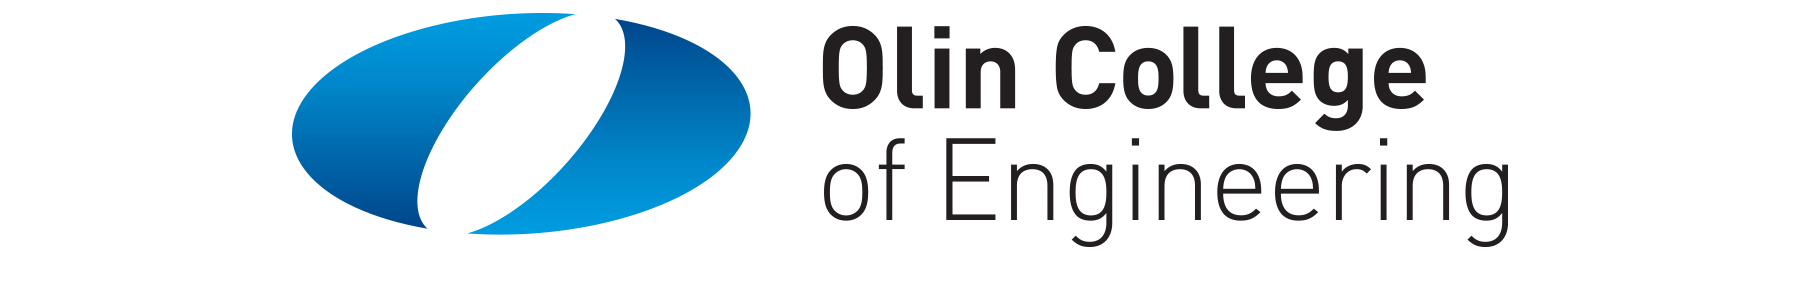 Olin College of Engineering identifier